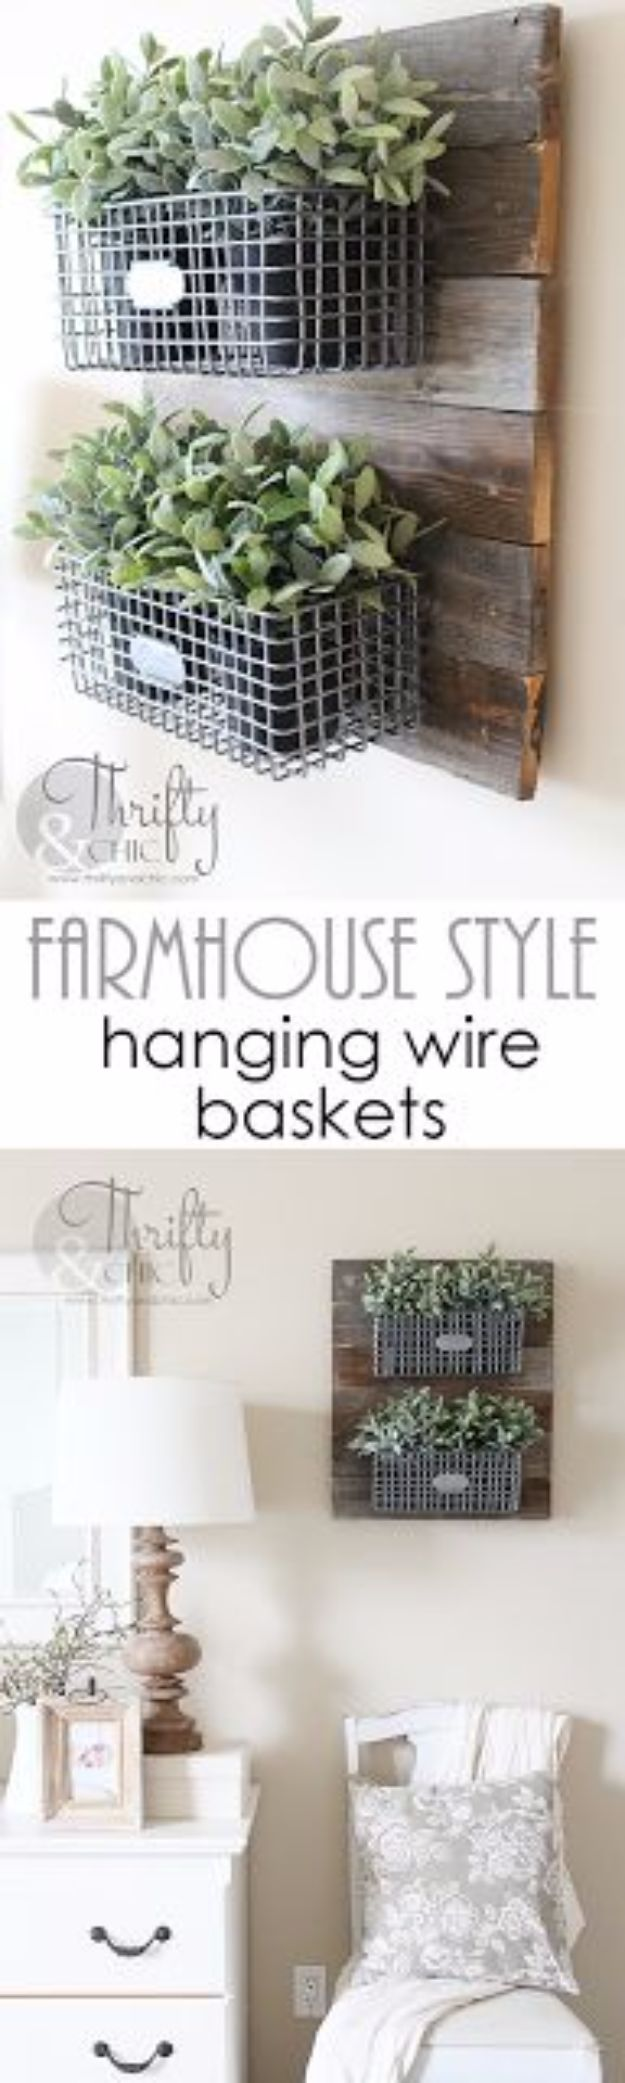 Best Country Decor Ideas - Farmhouse Style Hanging Wire Baskets - Rustic Farmhouse Decor Tutorials and Easy Vintage Shabby Chic Home Decor for Kitchen, Living Room and Bathroom - Creative Country Crafts, Rustic Wall Art and Accessories to Make and Sell http://diyjoy.com/country-decor-ideas